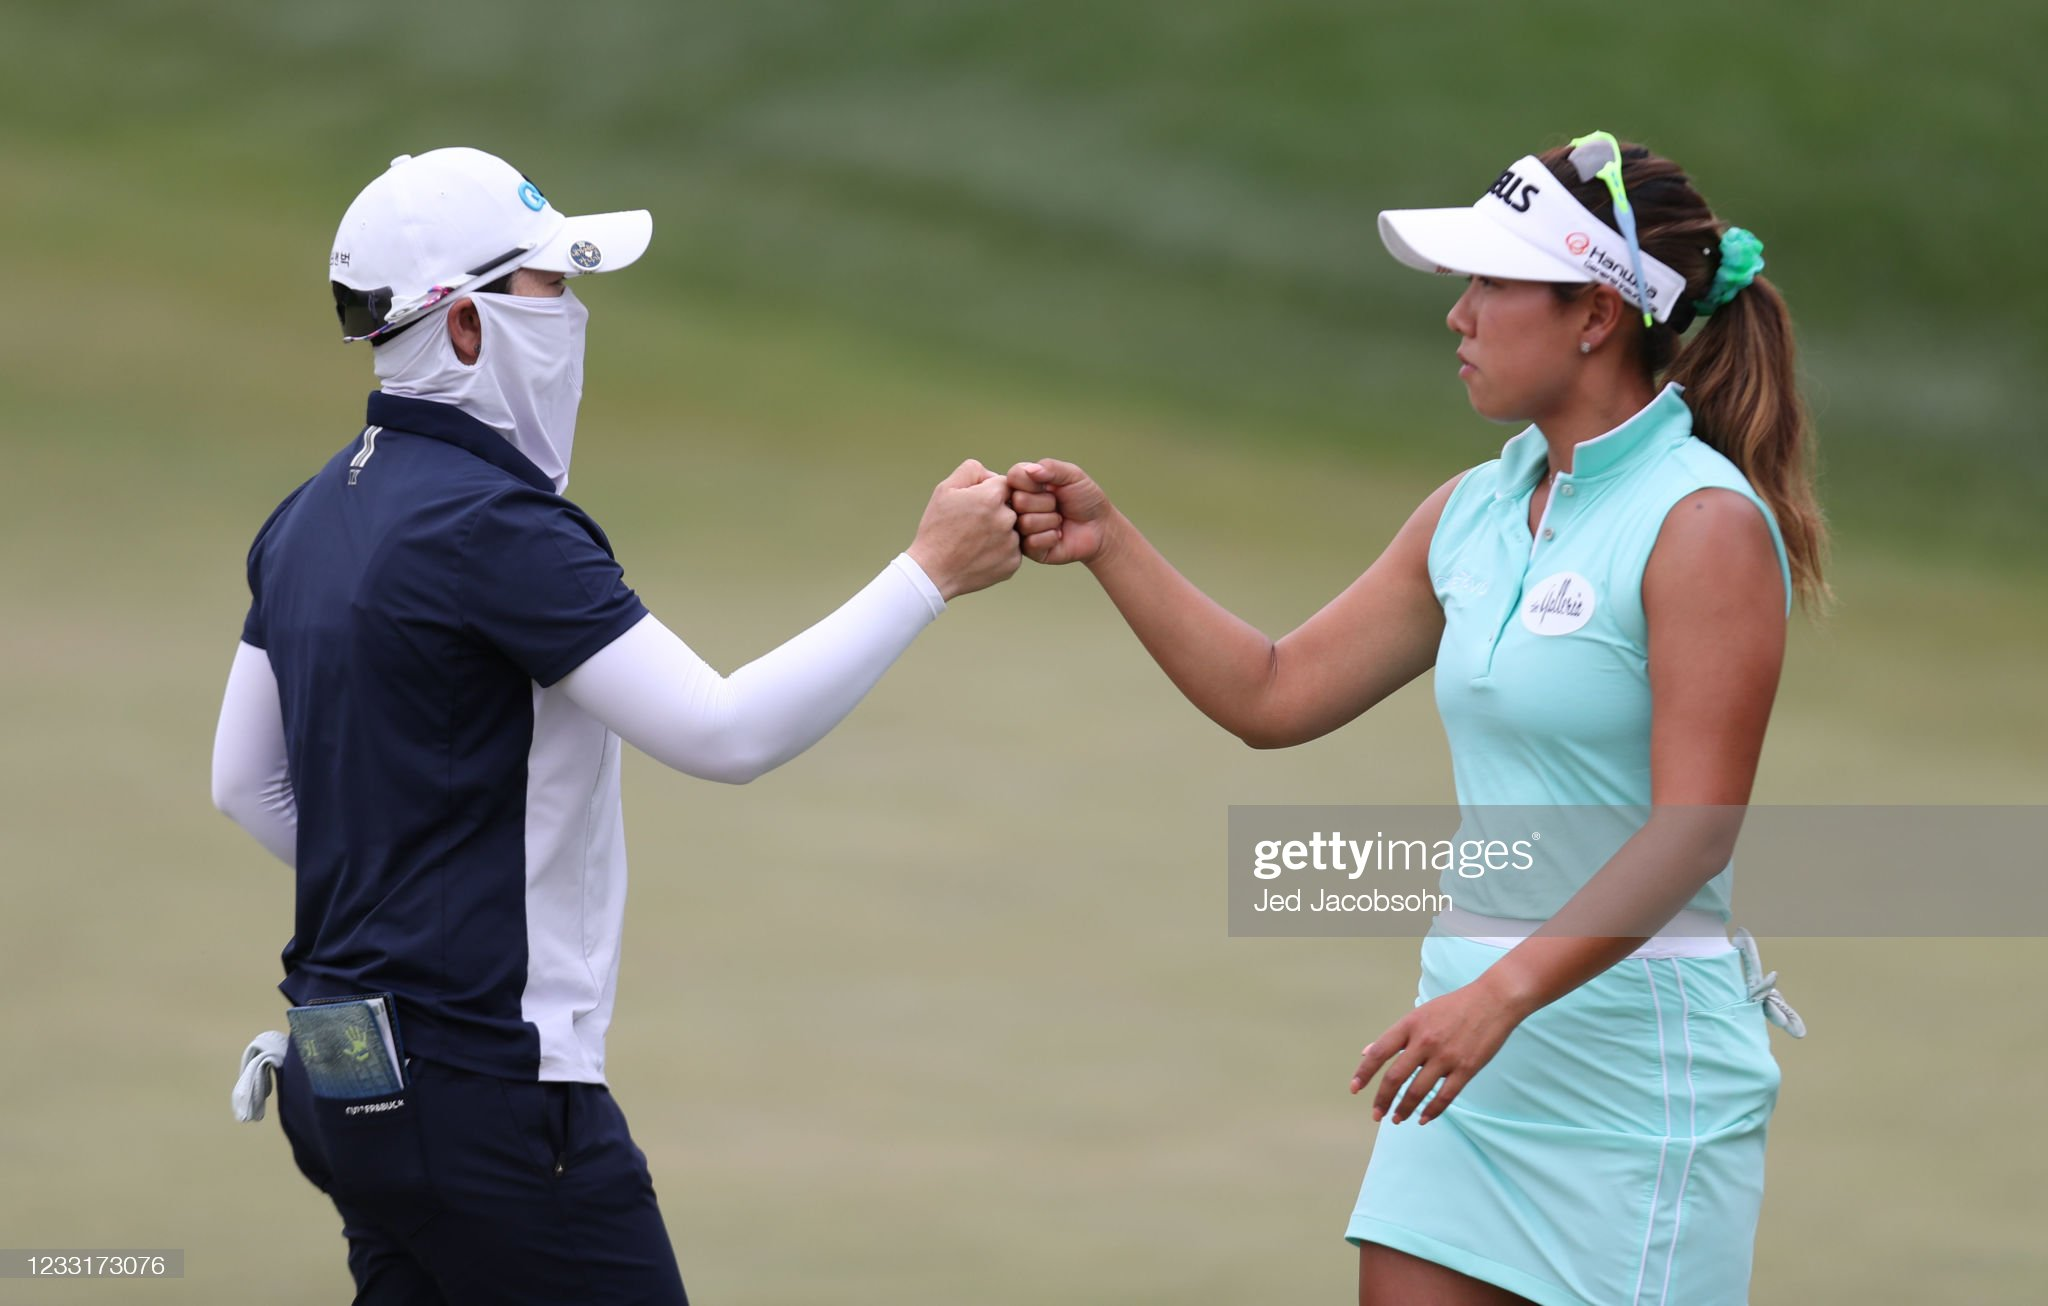 https://media.gettyimages.com/photos/eunhee-ji-of-south-korea-left-is-congratulated-by-jenny-shin-of-south-picture-id1233173076?s=2048x2048